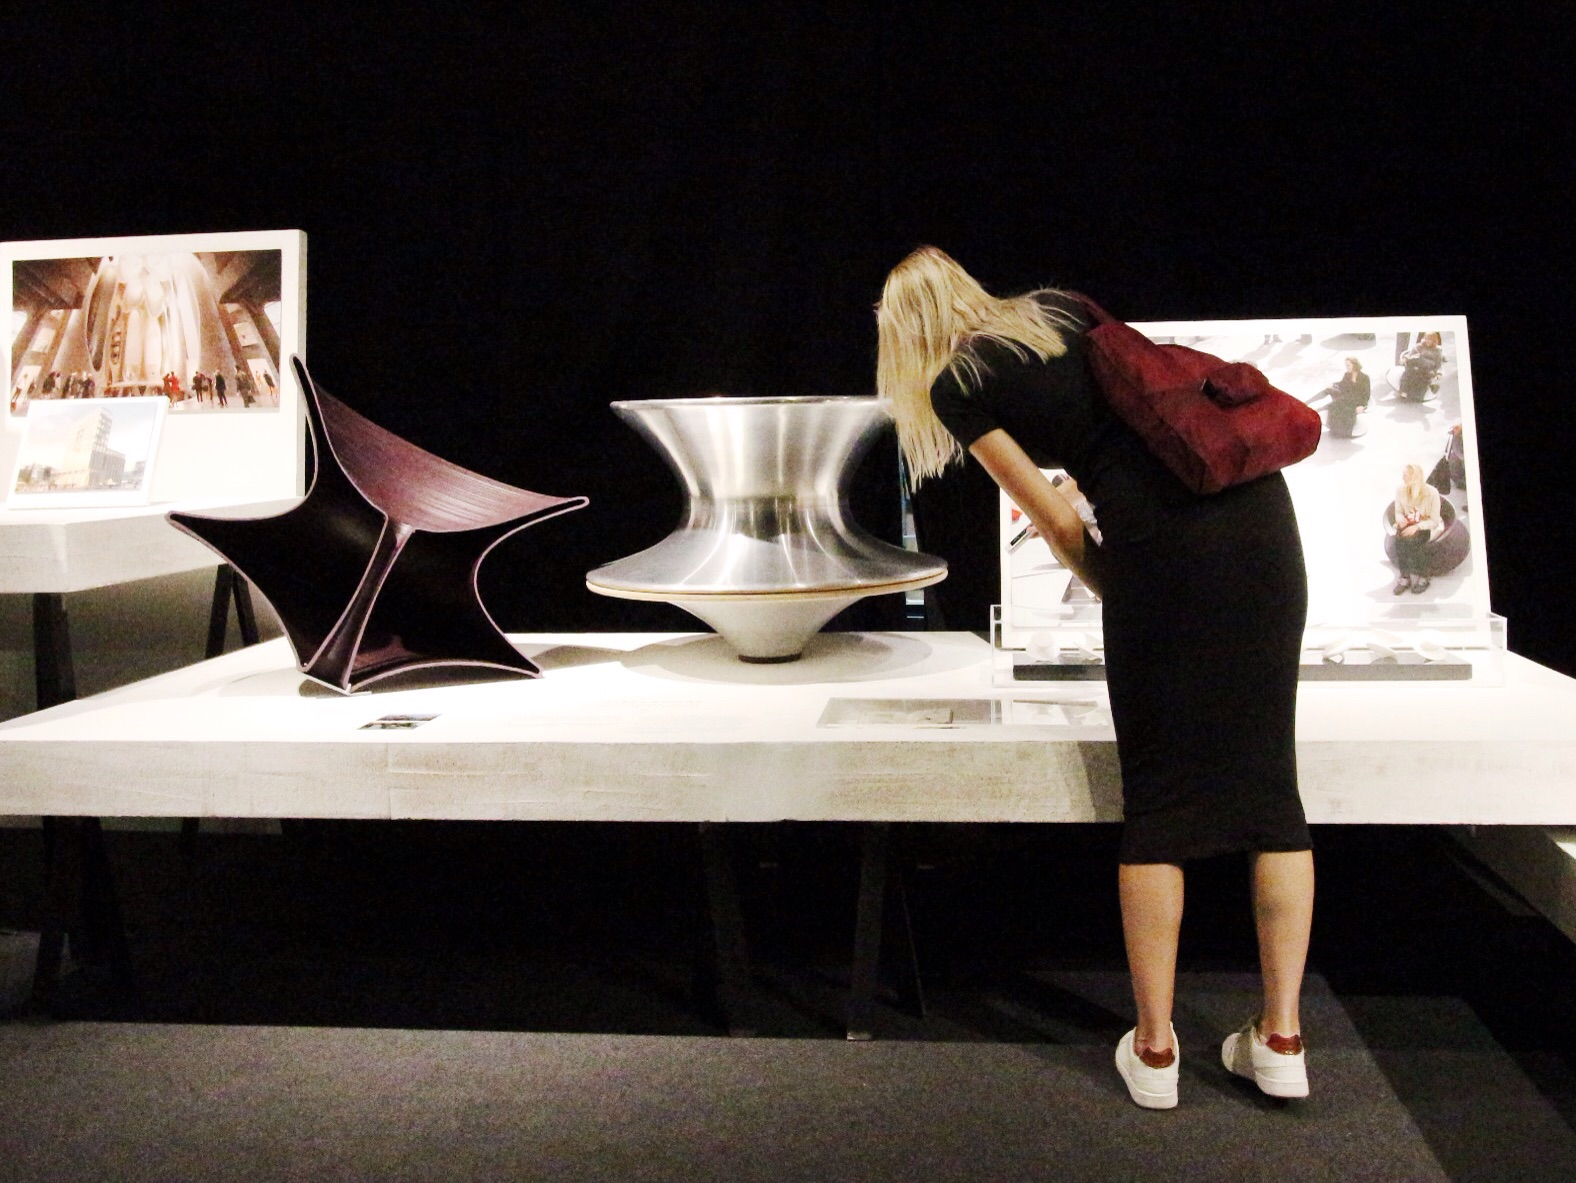 Exploring the process of ergonomic development of Spun Chair and the traditional craft of large-scale metal spinning